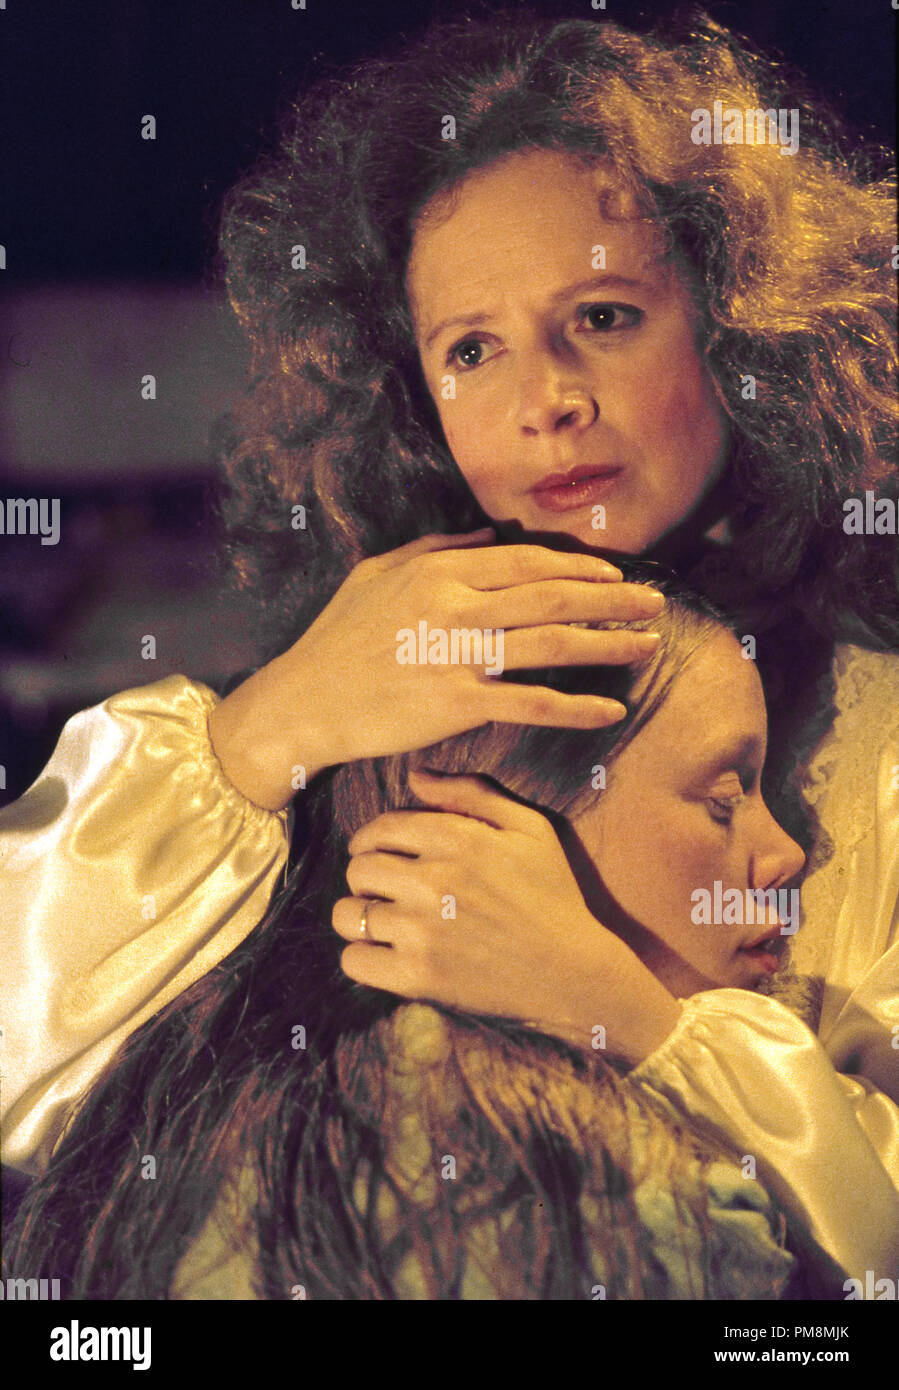 Piper Laurie on carrie